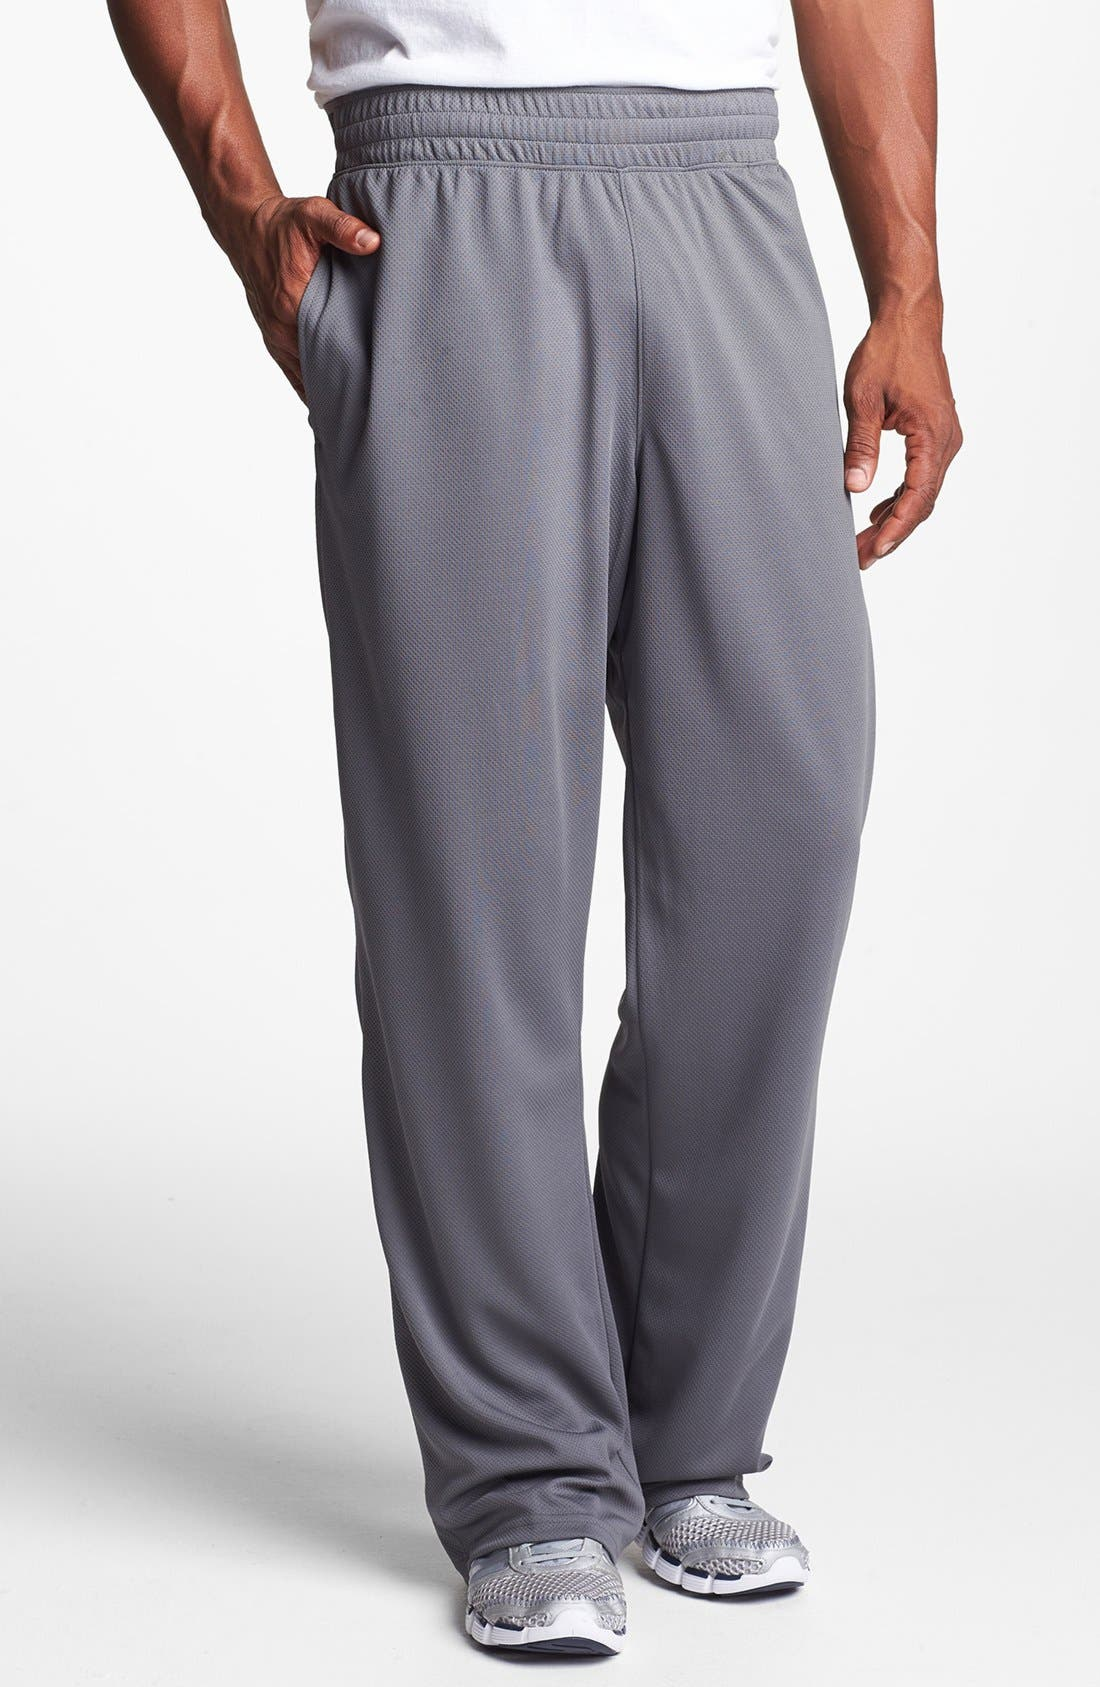 Alternate Image 1 Selected - Under Armour 'Reflex' Pants